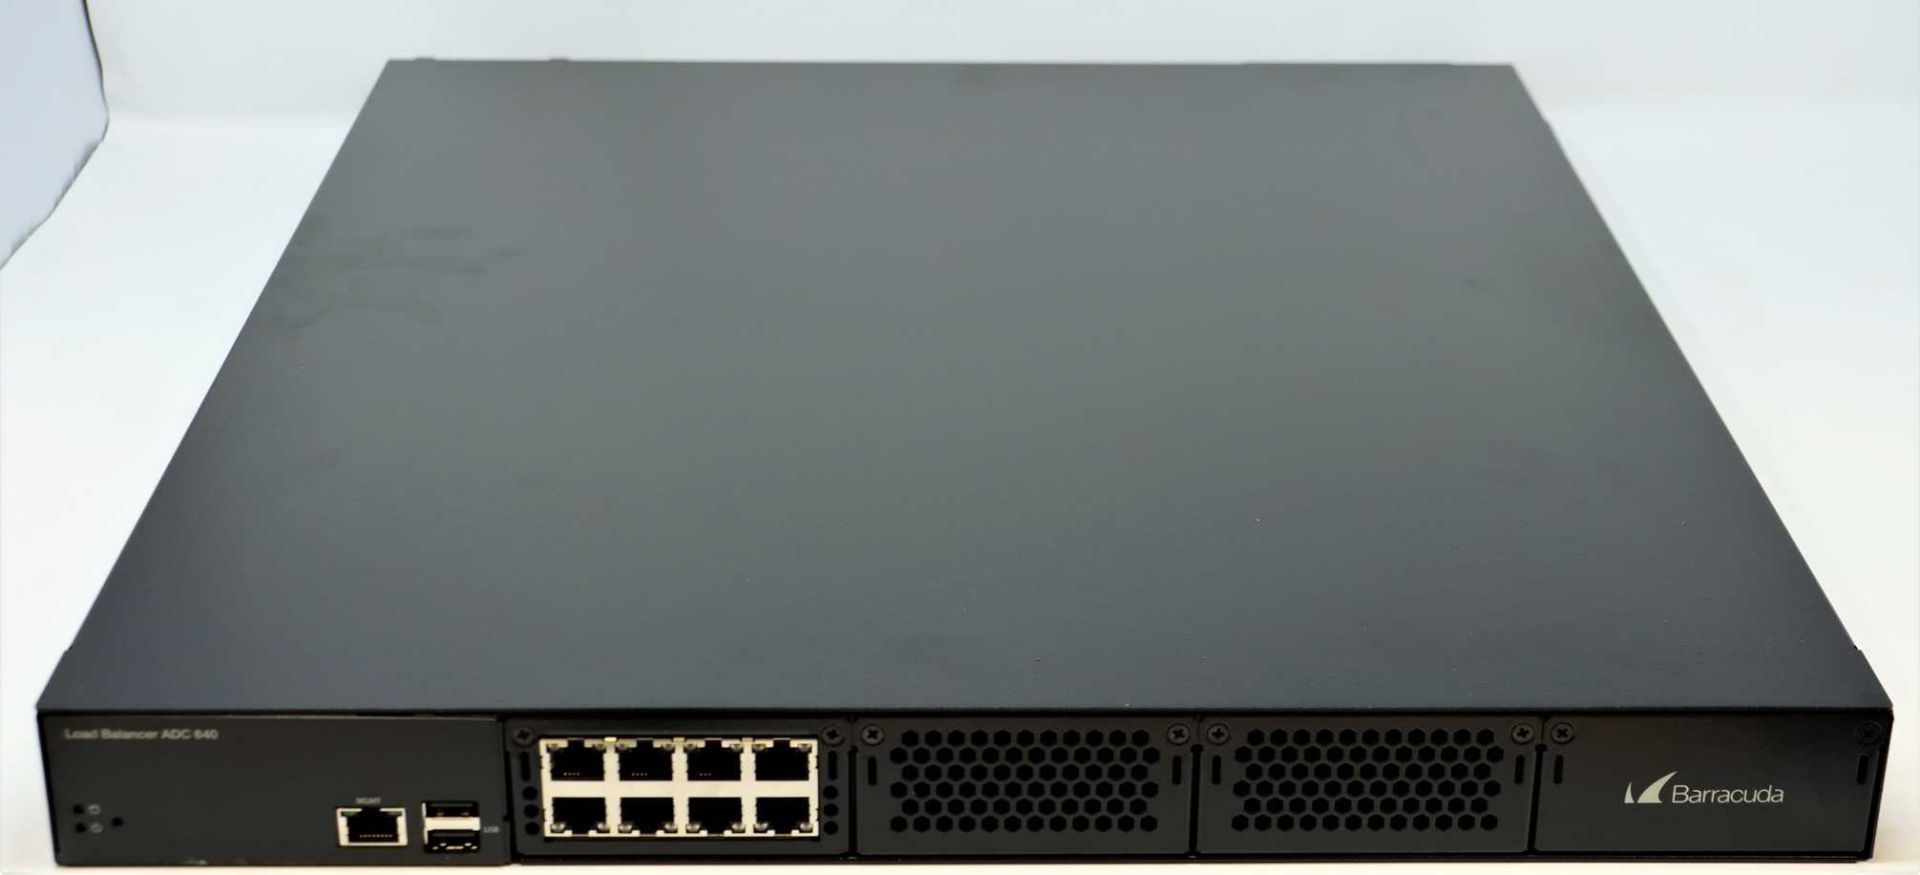 A boxed as new Barracuda Load Balancer ADC 640 (BBF640B BAR-BF-139349) (Rails, cables and manual - Image 17 of 18